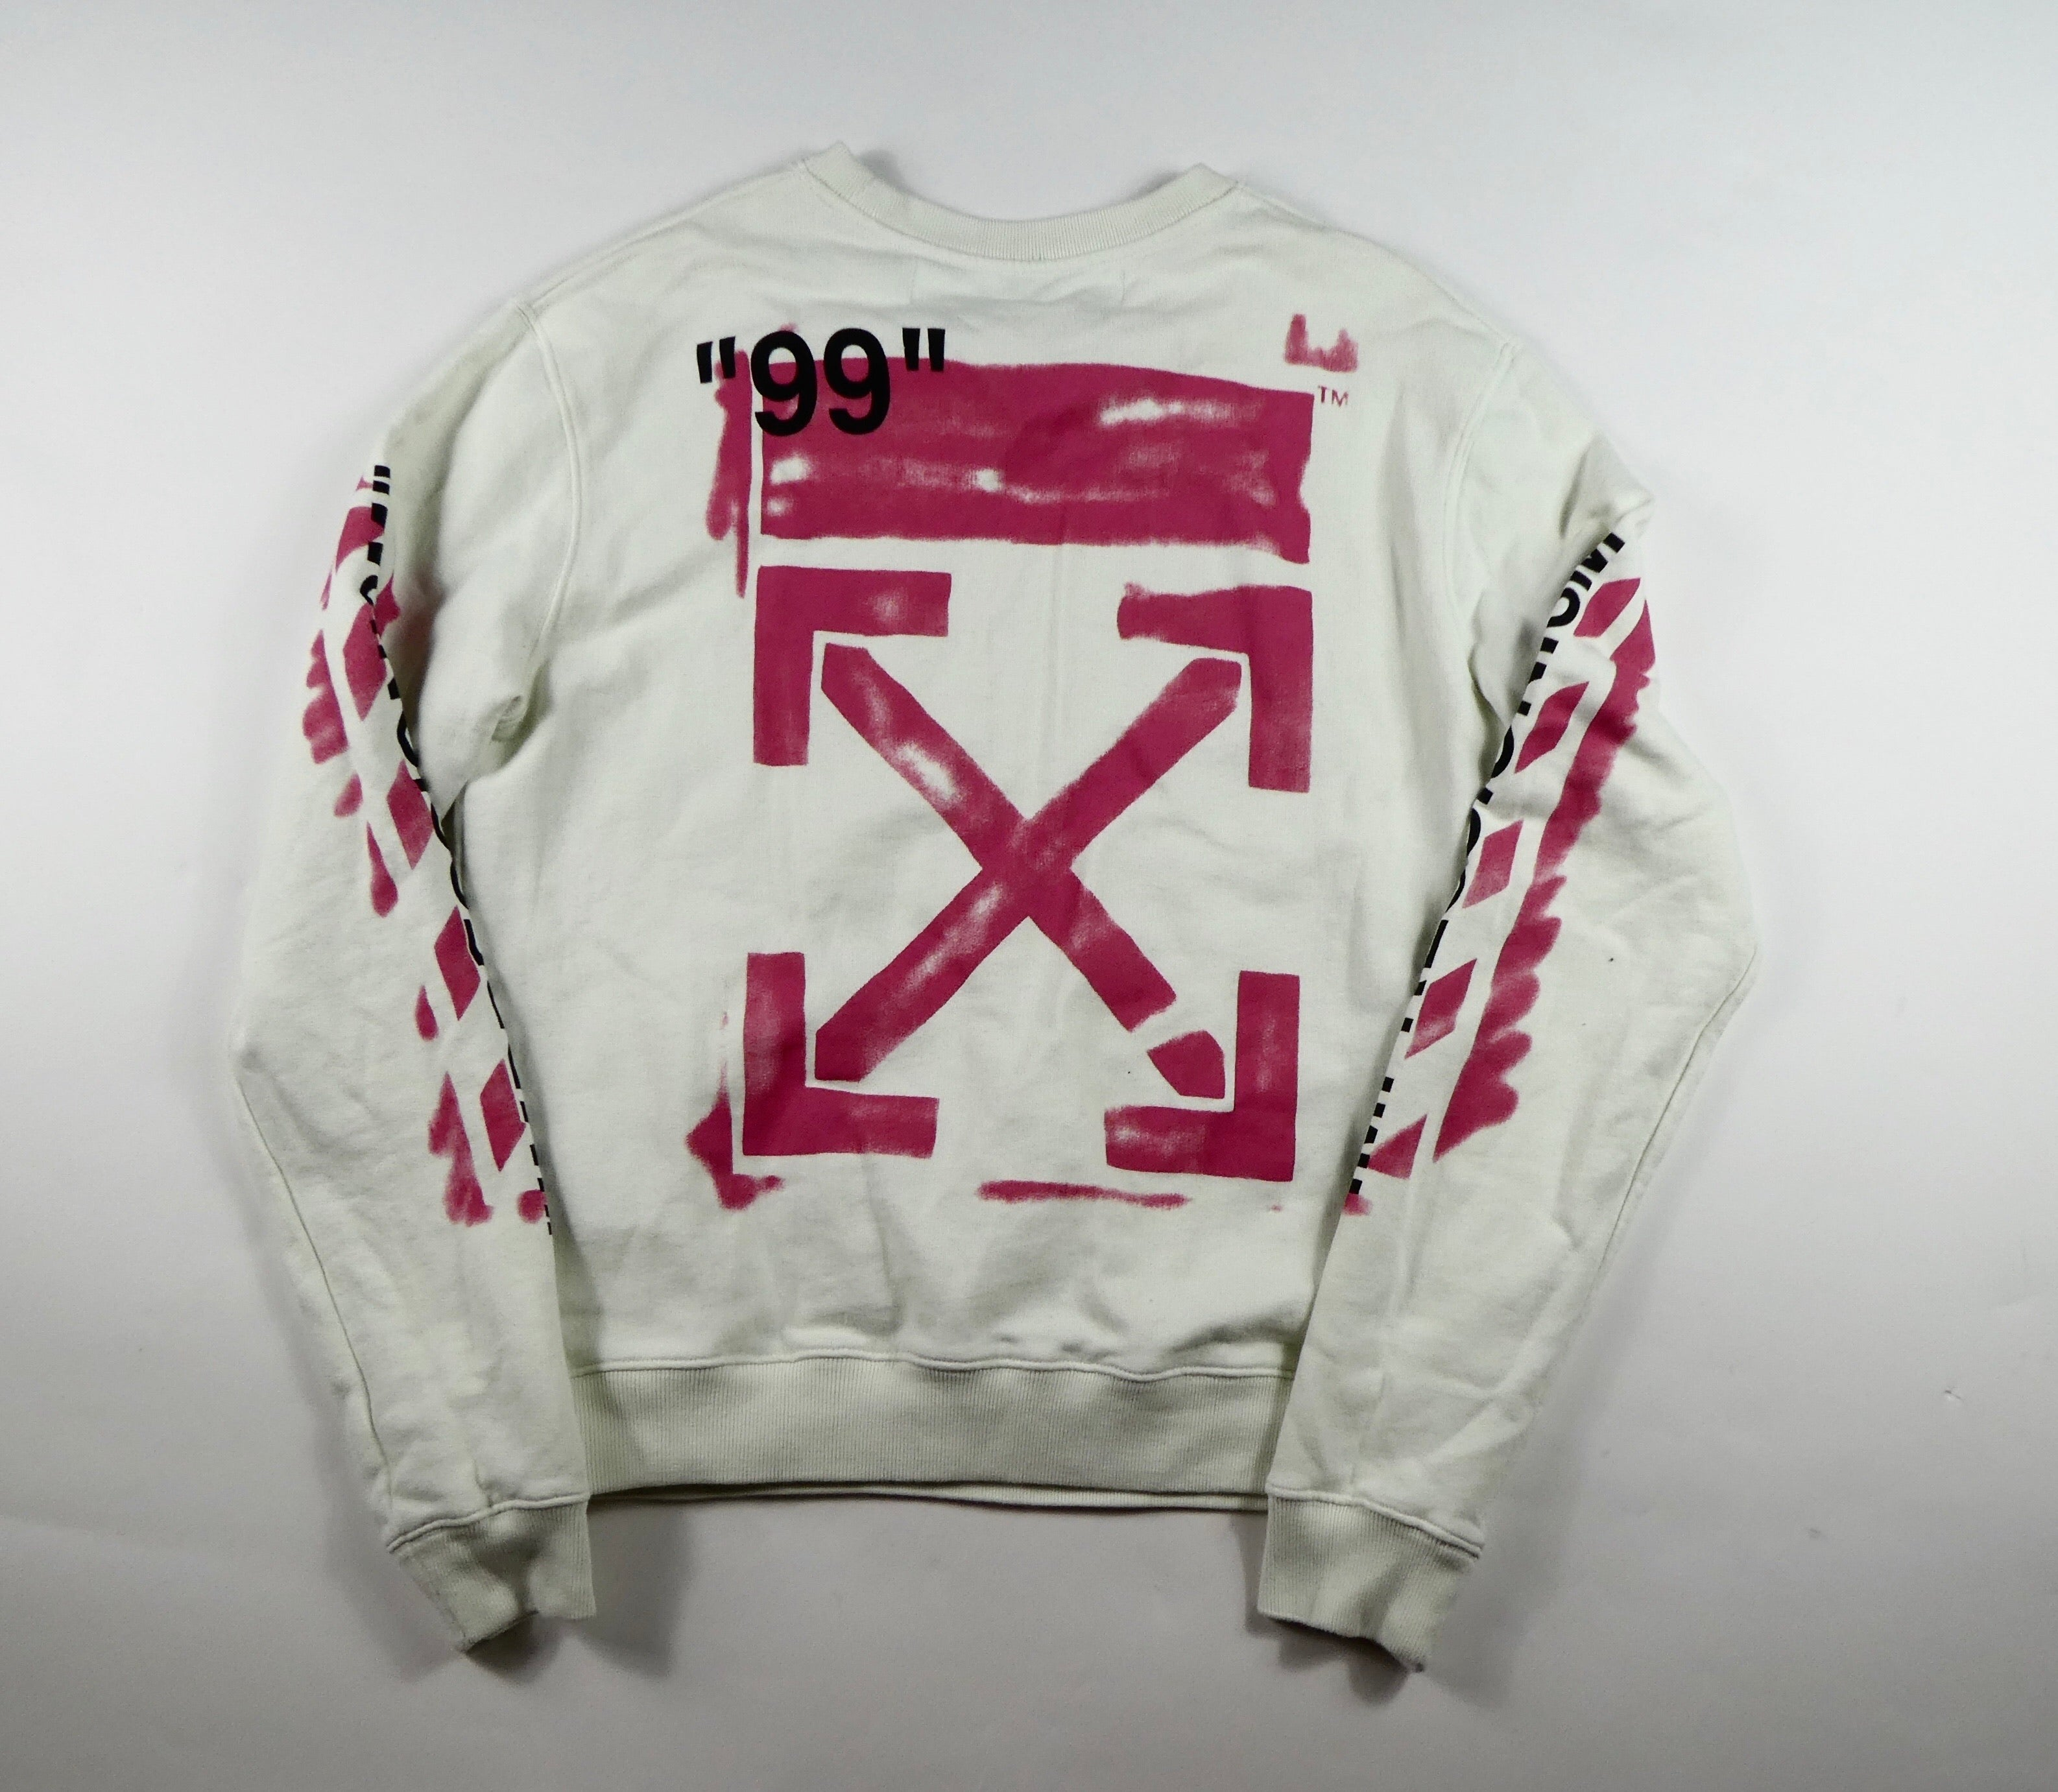 Off White Virgil Abloh Impressionism Arrows Sweatshirt - Medium